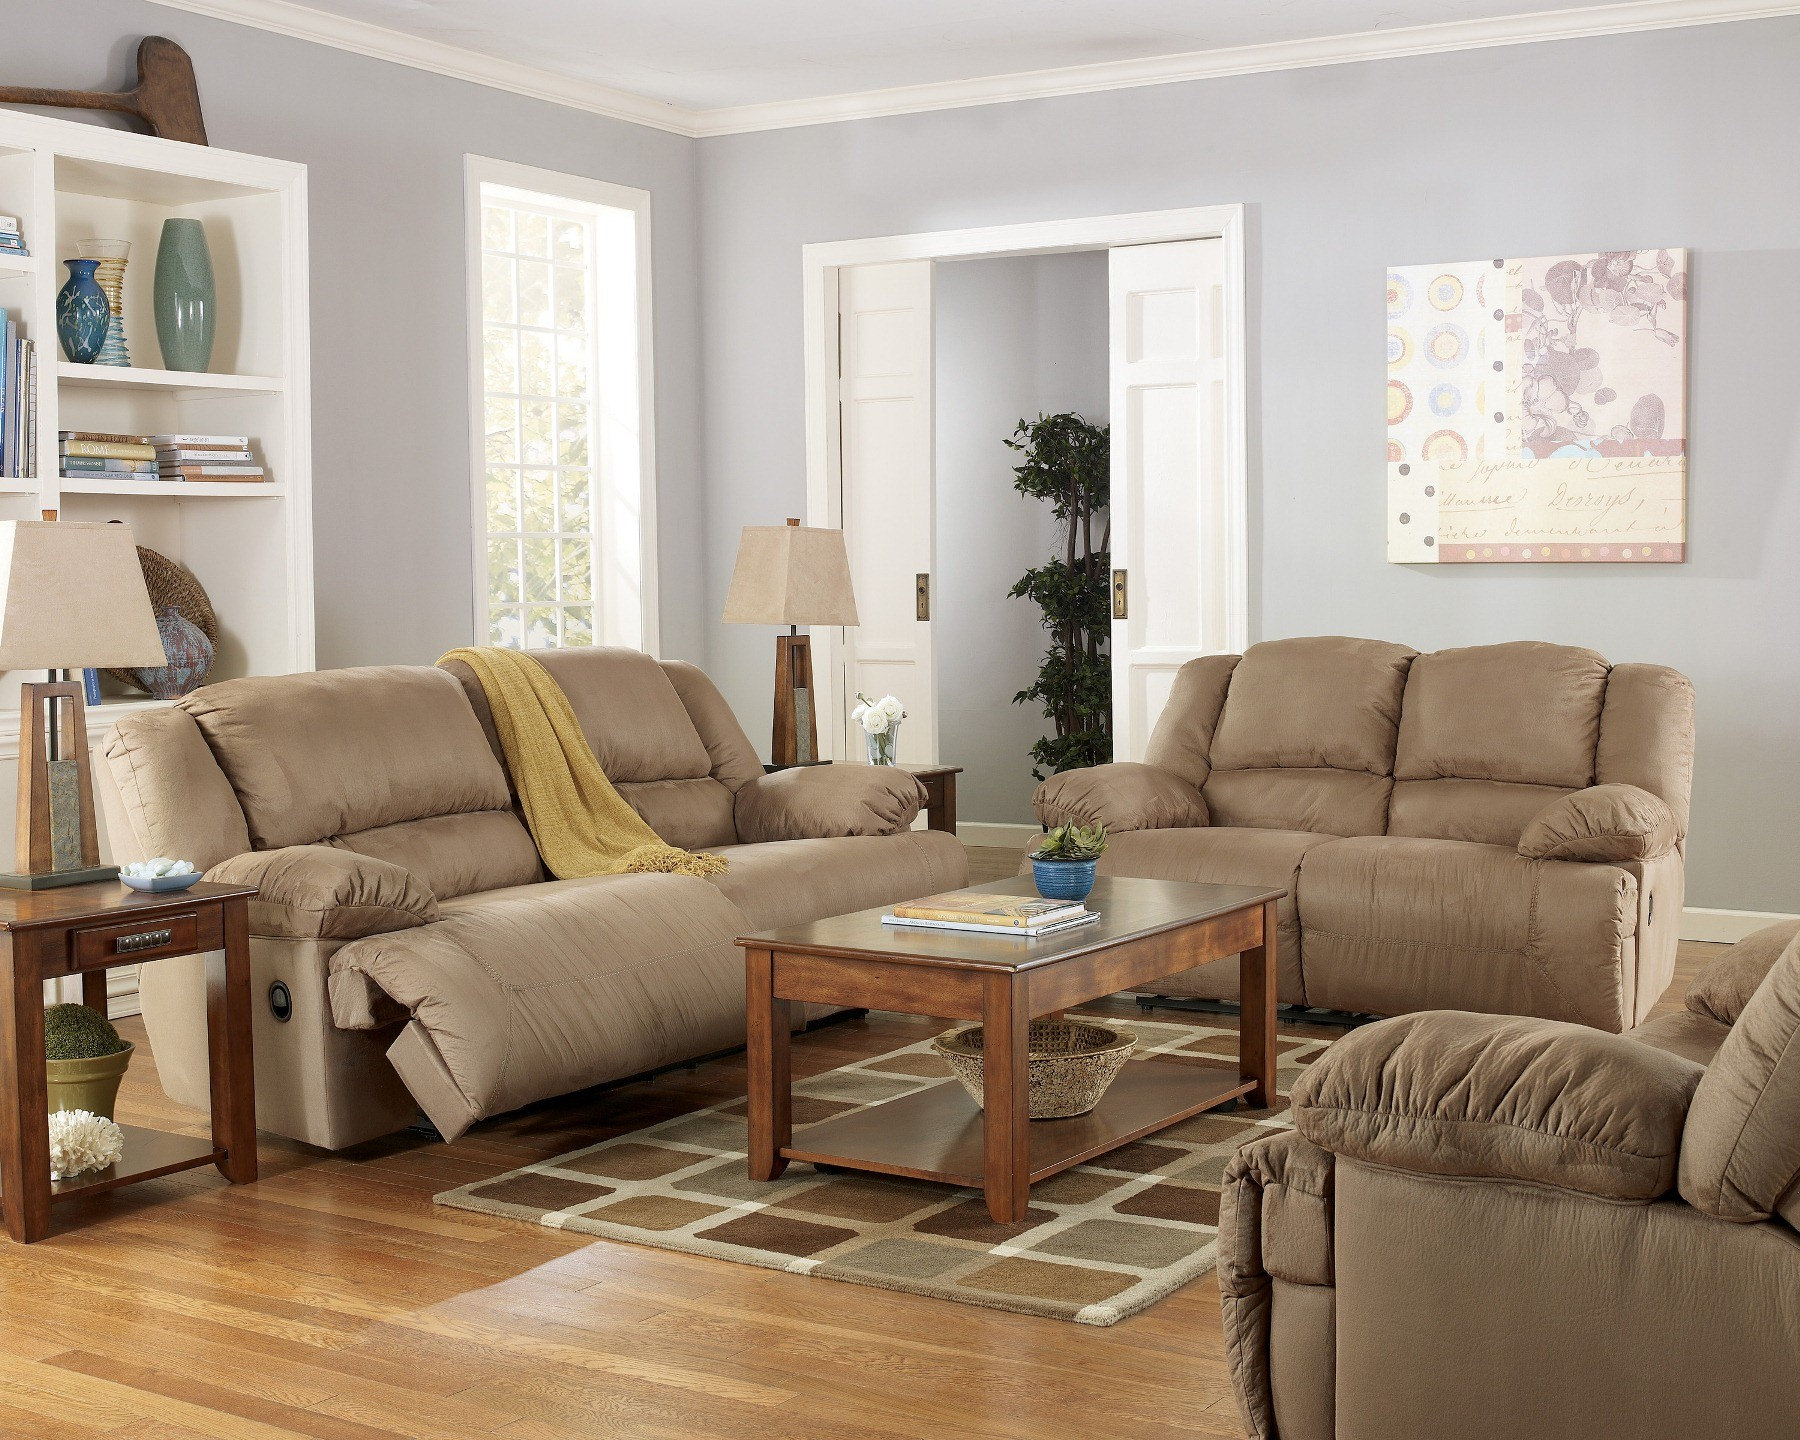 Hogan Mocha Reclining Living Room Set from Ashley (57802 ...